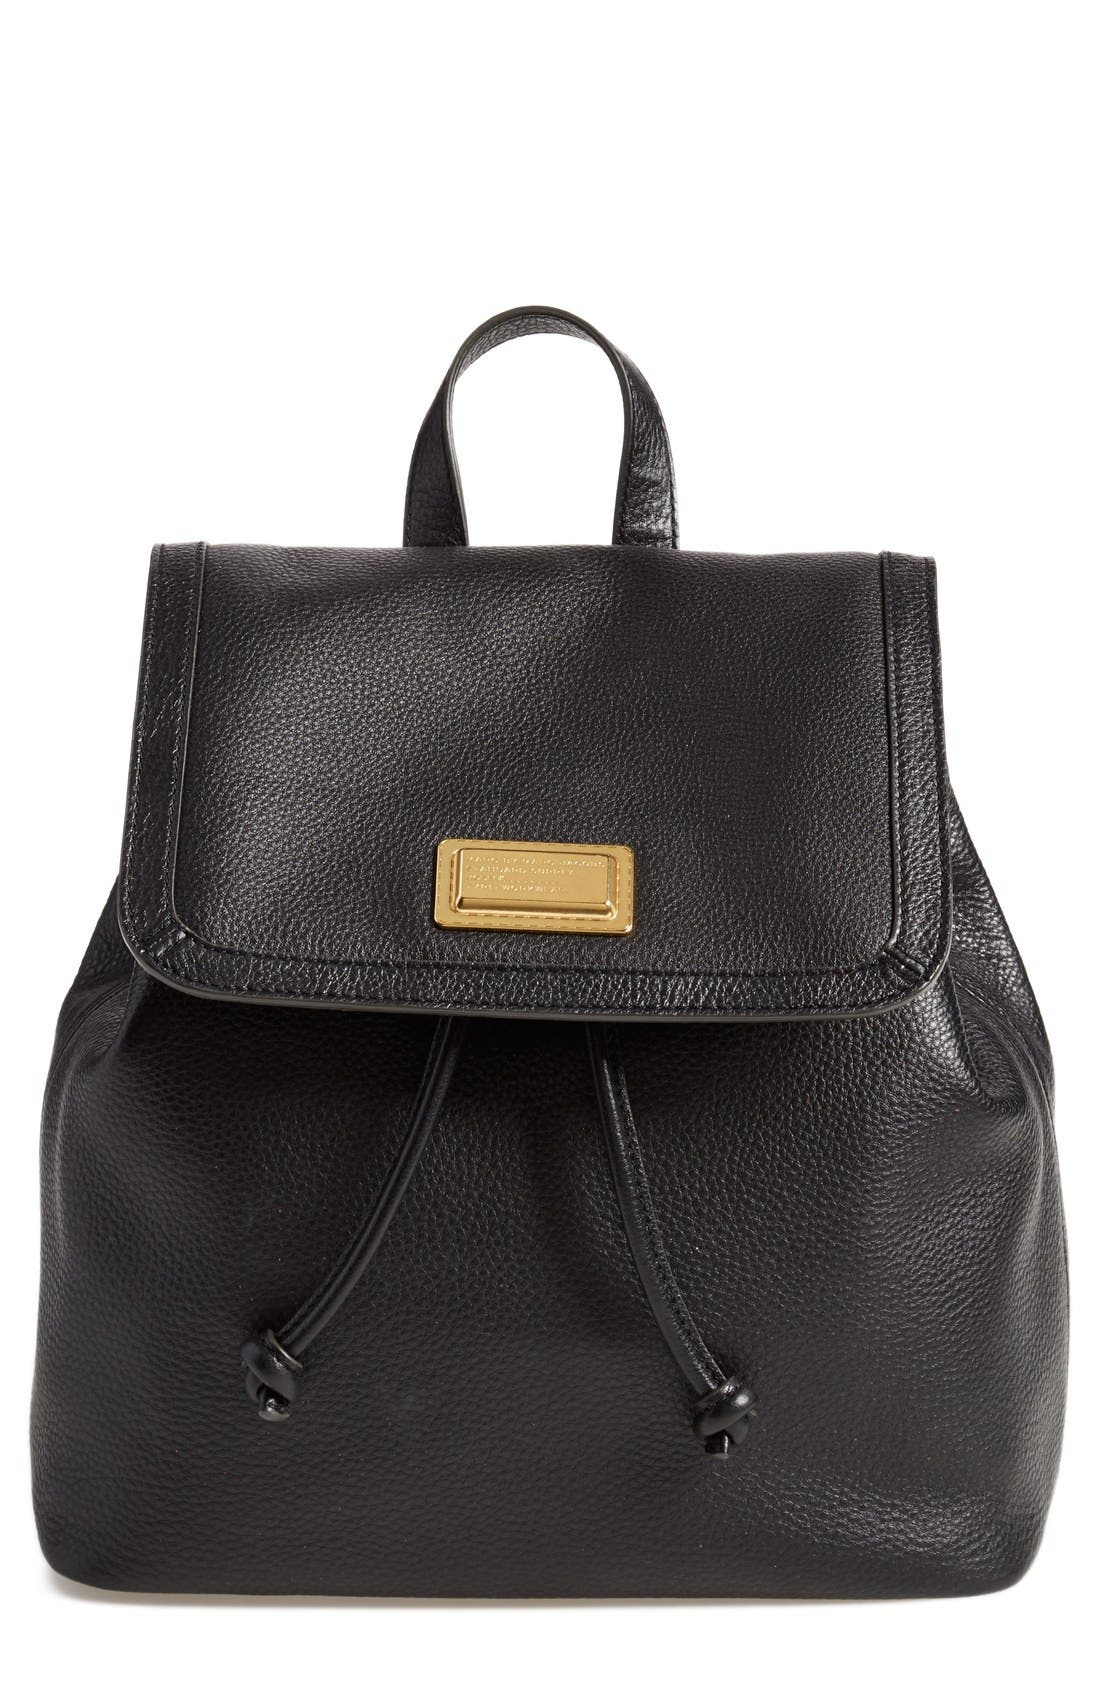 MARC BY MARC JACOBS 'Take Your Marc' Leather Backpack,                             Main thumbnail 1, color,                             001